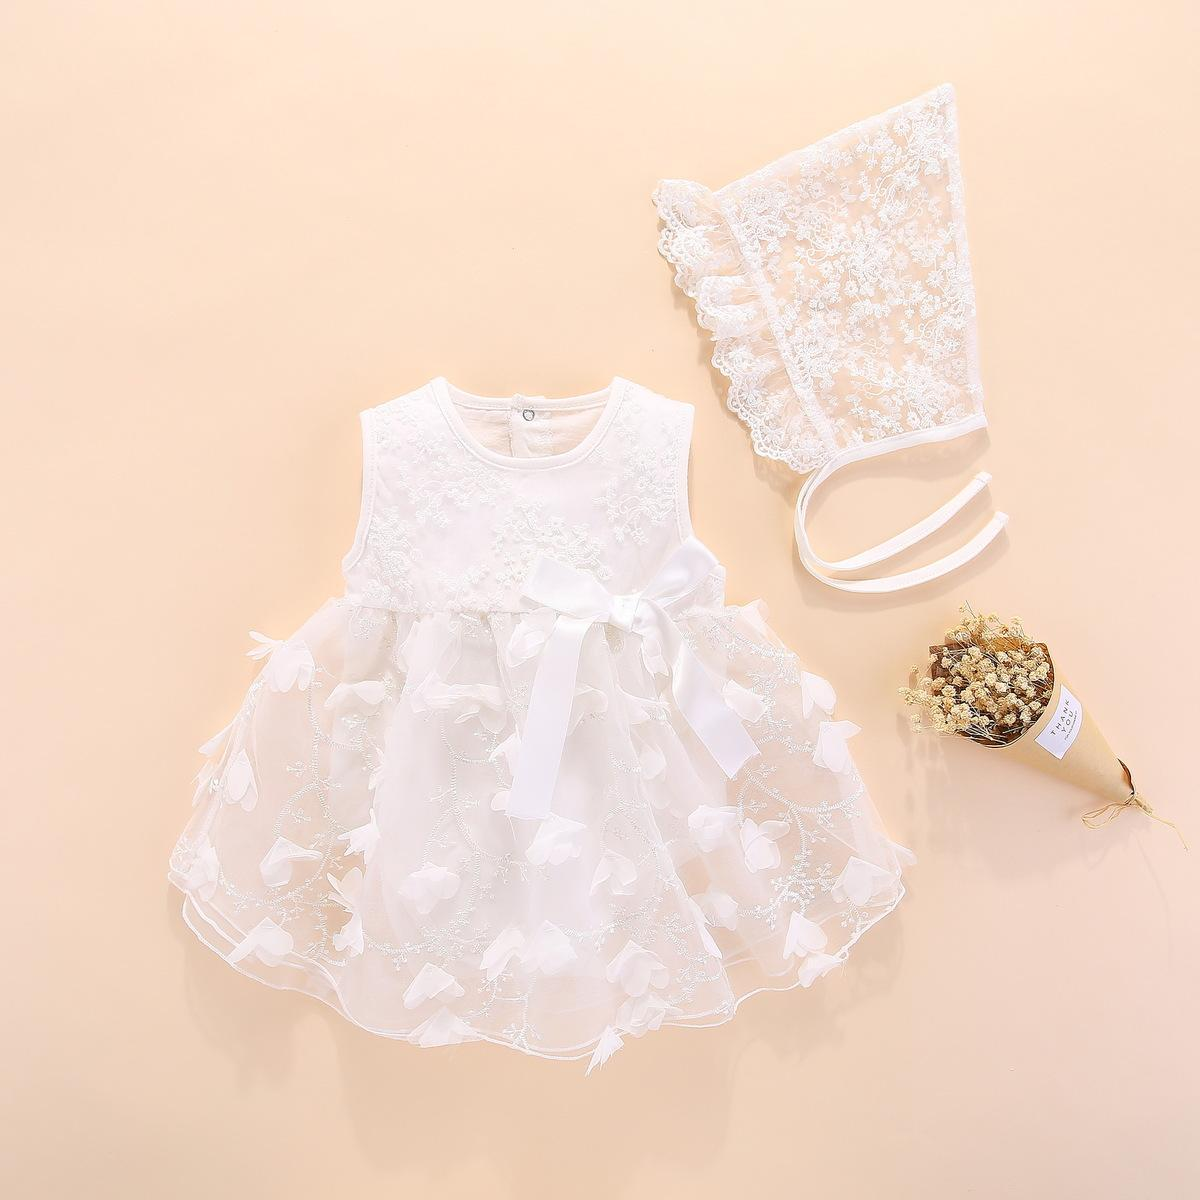 9aebd68eedc6 2019 Newborn Baby Girl Dresses Clothes Summer With Flower 0 3 6 Month Baby  Girl Dress For Party And Wedding Princess Style Clothes Y18102007 From  Gou07